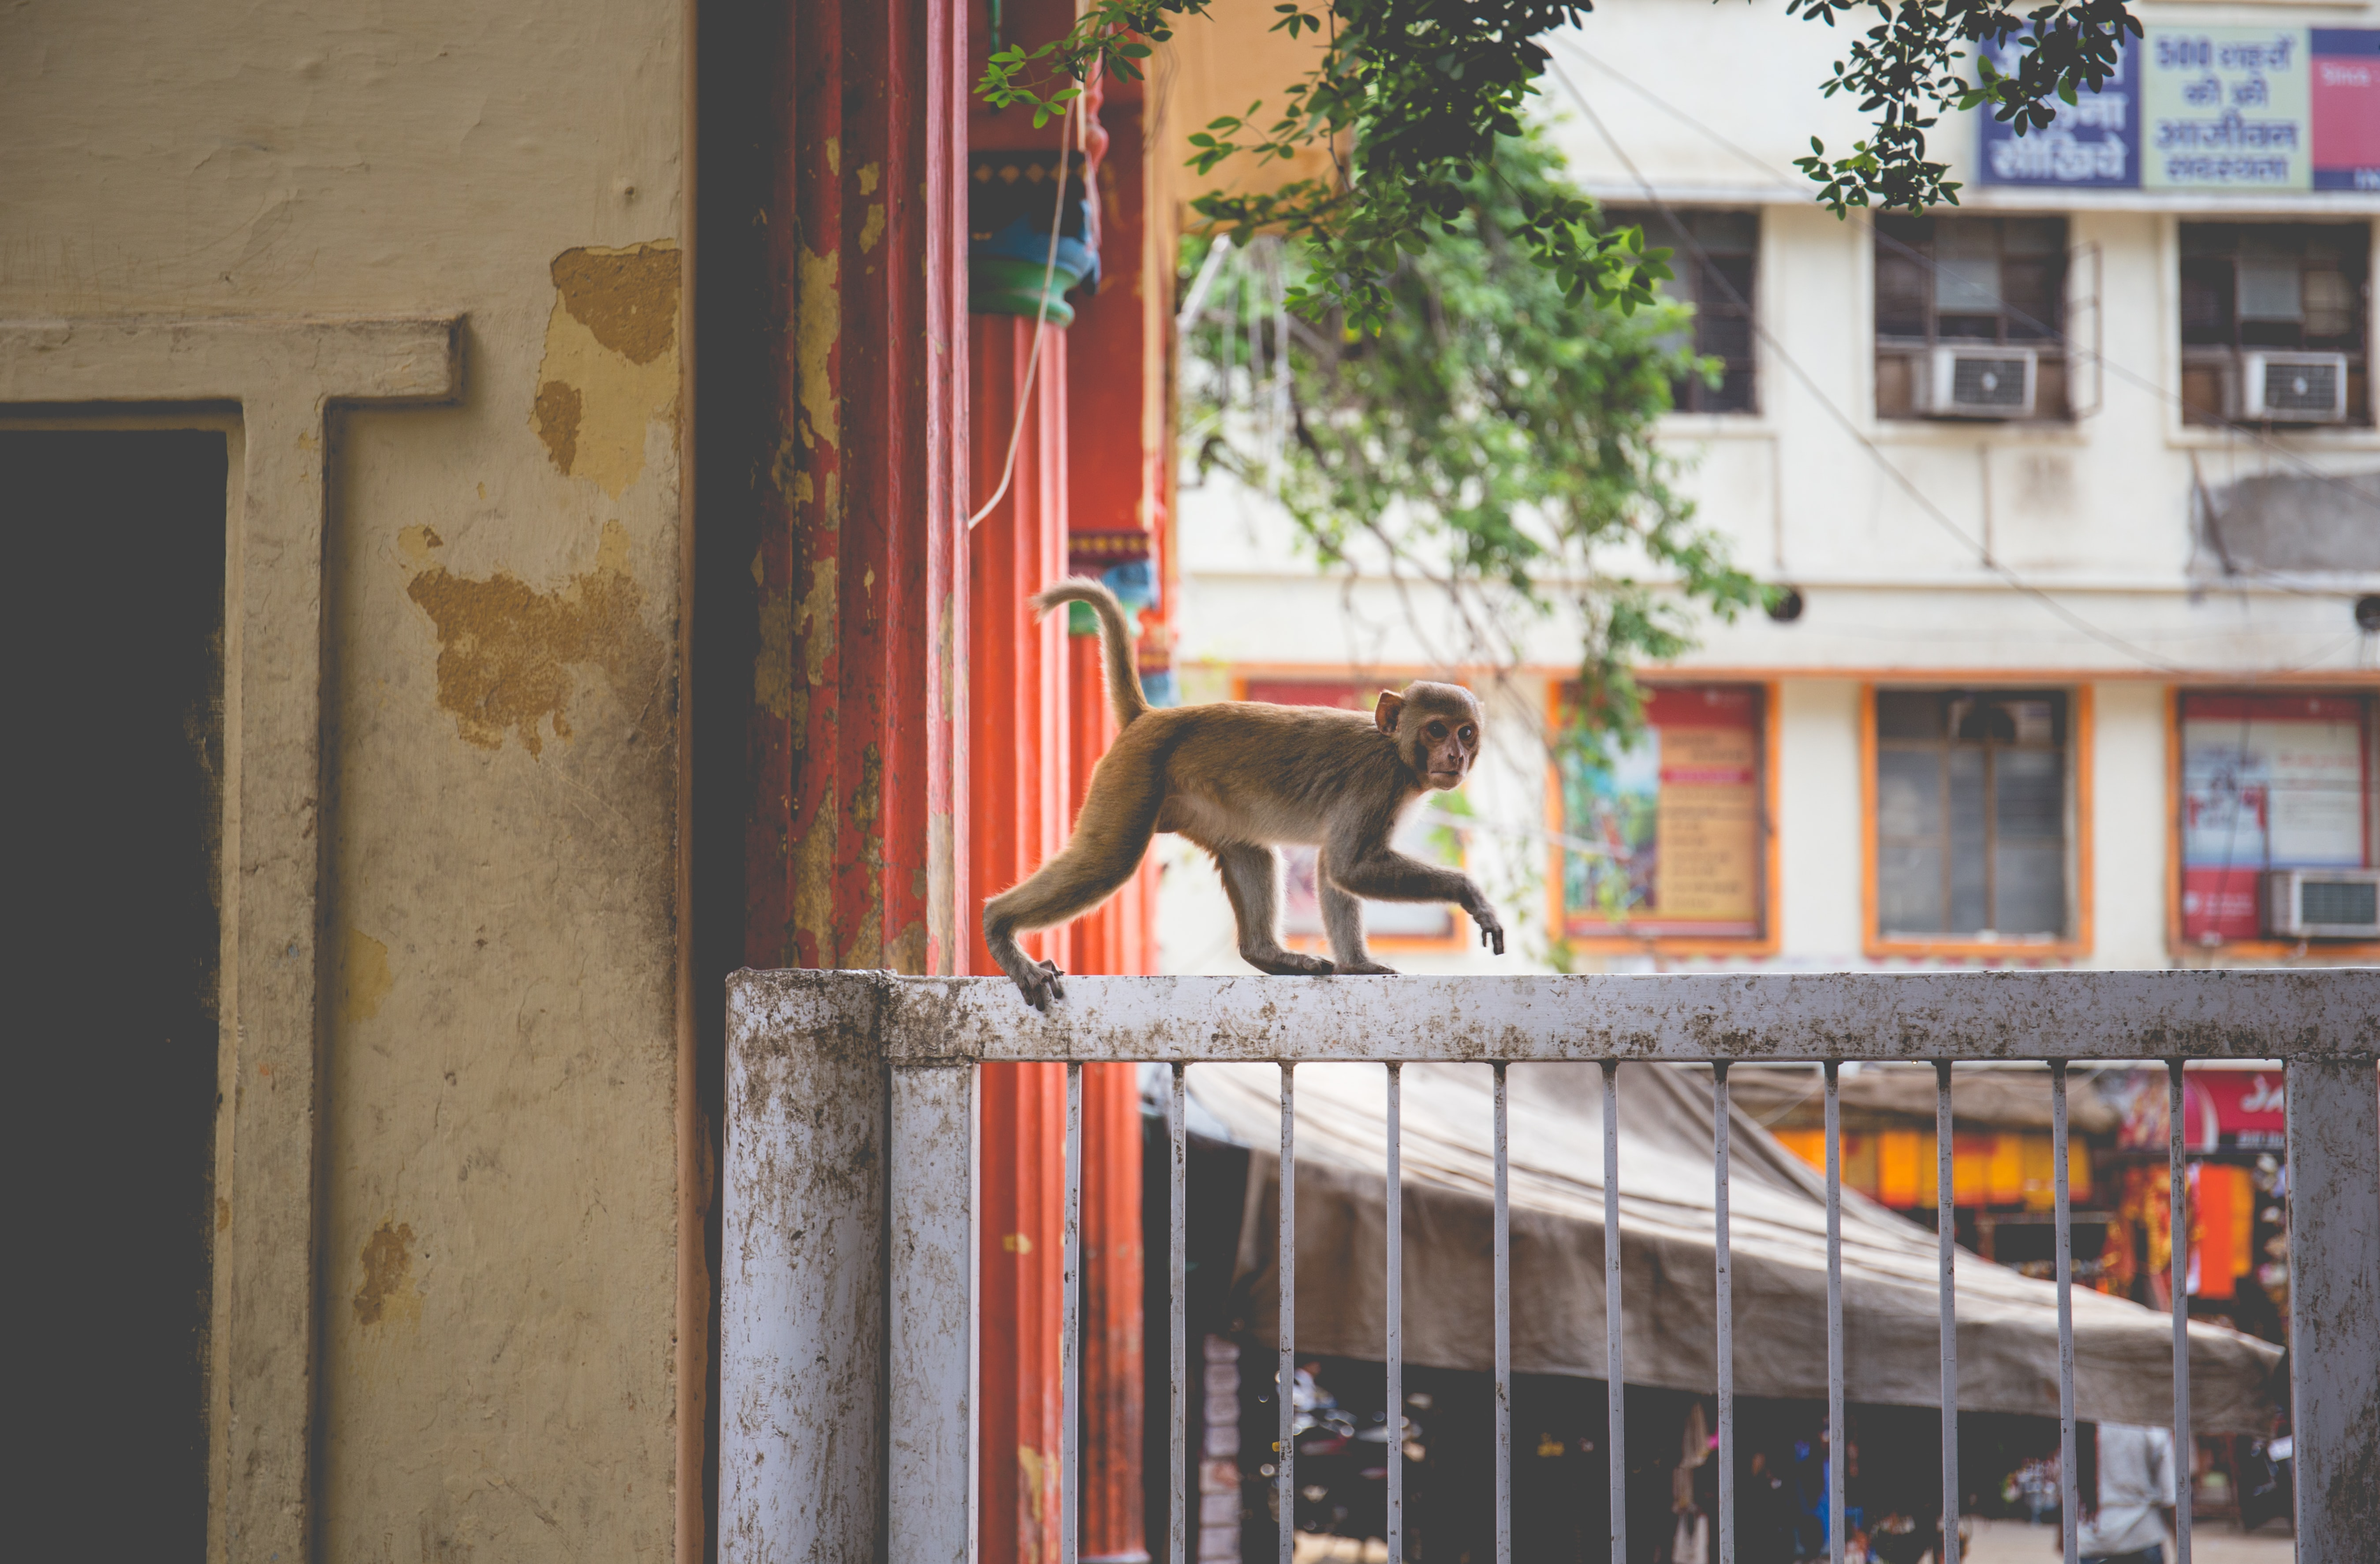 primate on white metal grille during daytime